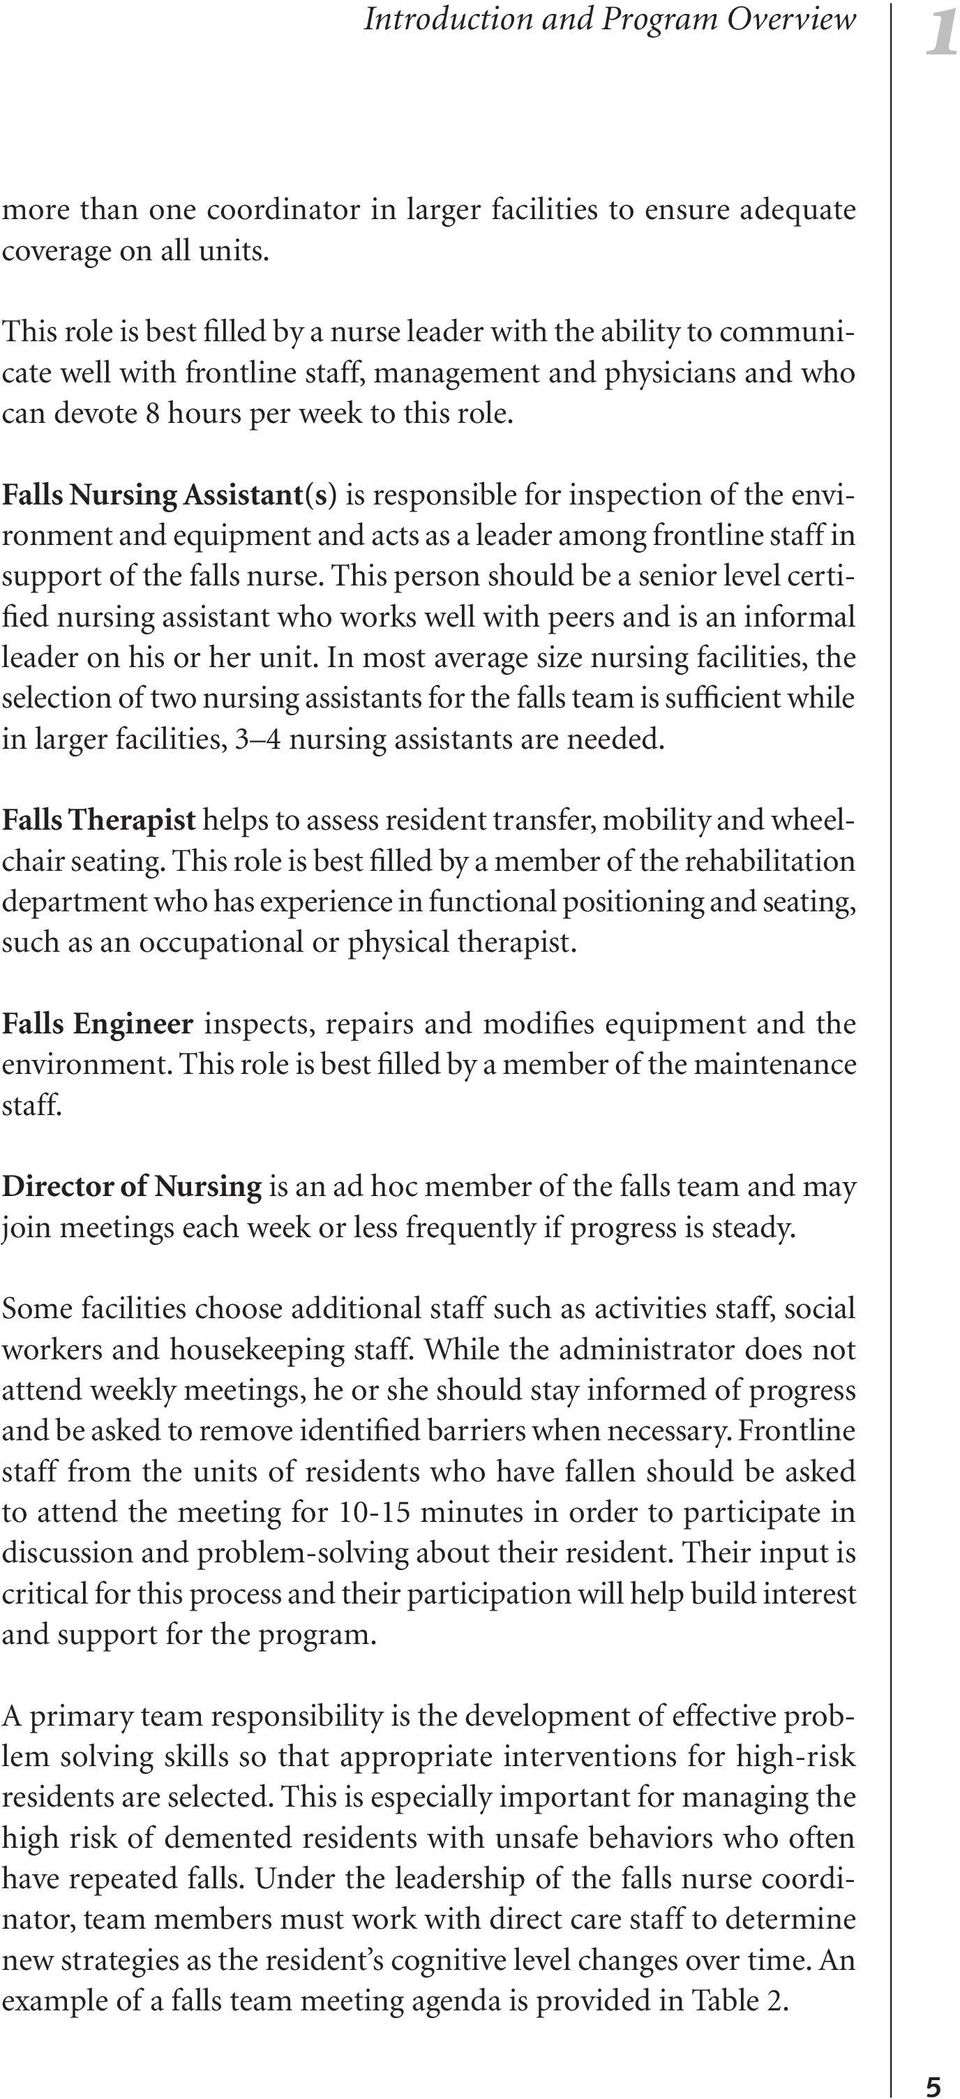 Falls Nursing Assistant(s) is responsible for inspection of the environment and equipment and acts as a leader among frontline staff in support of the falls nurse.